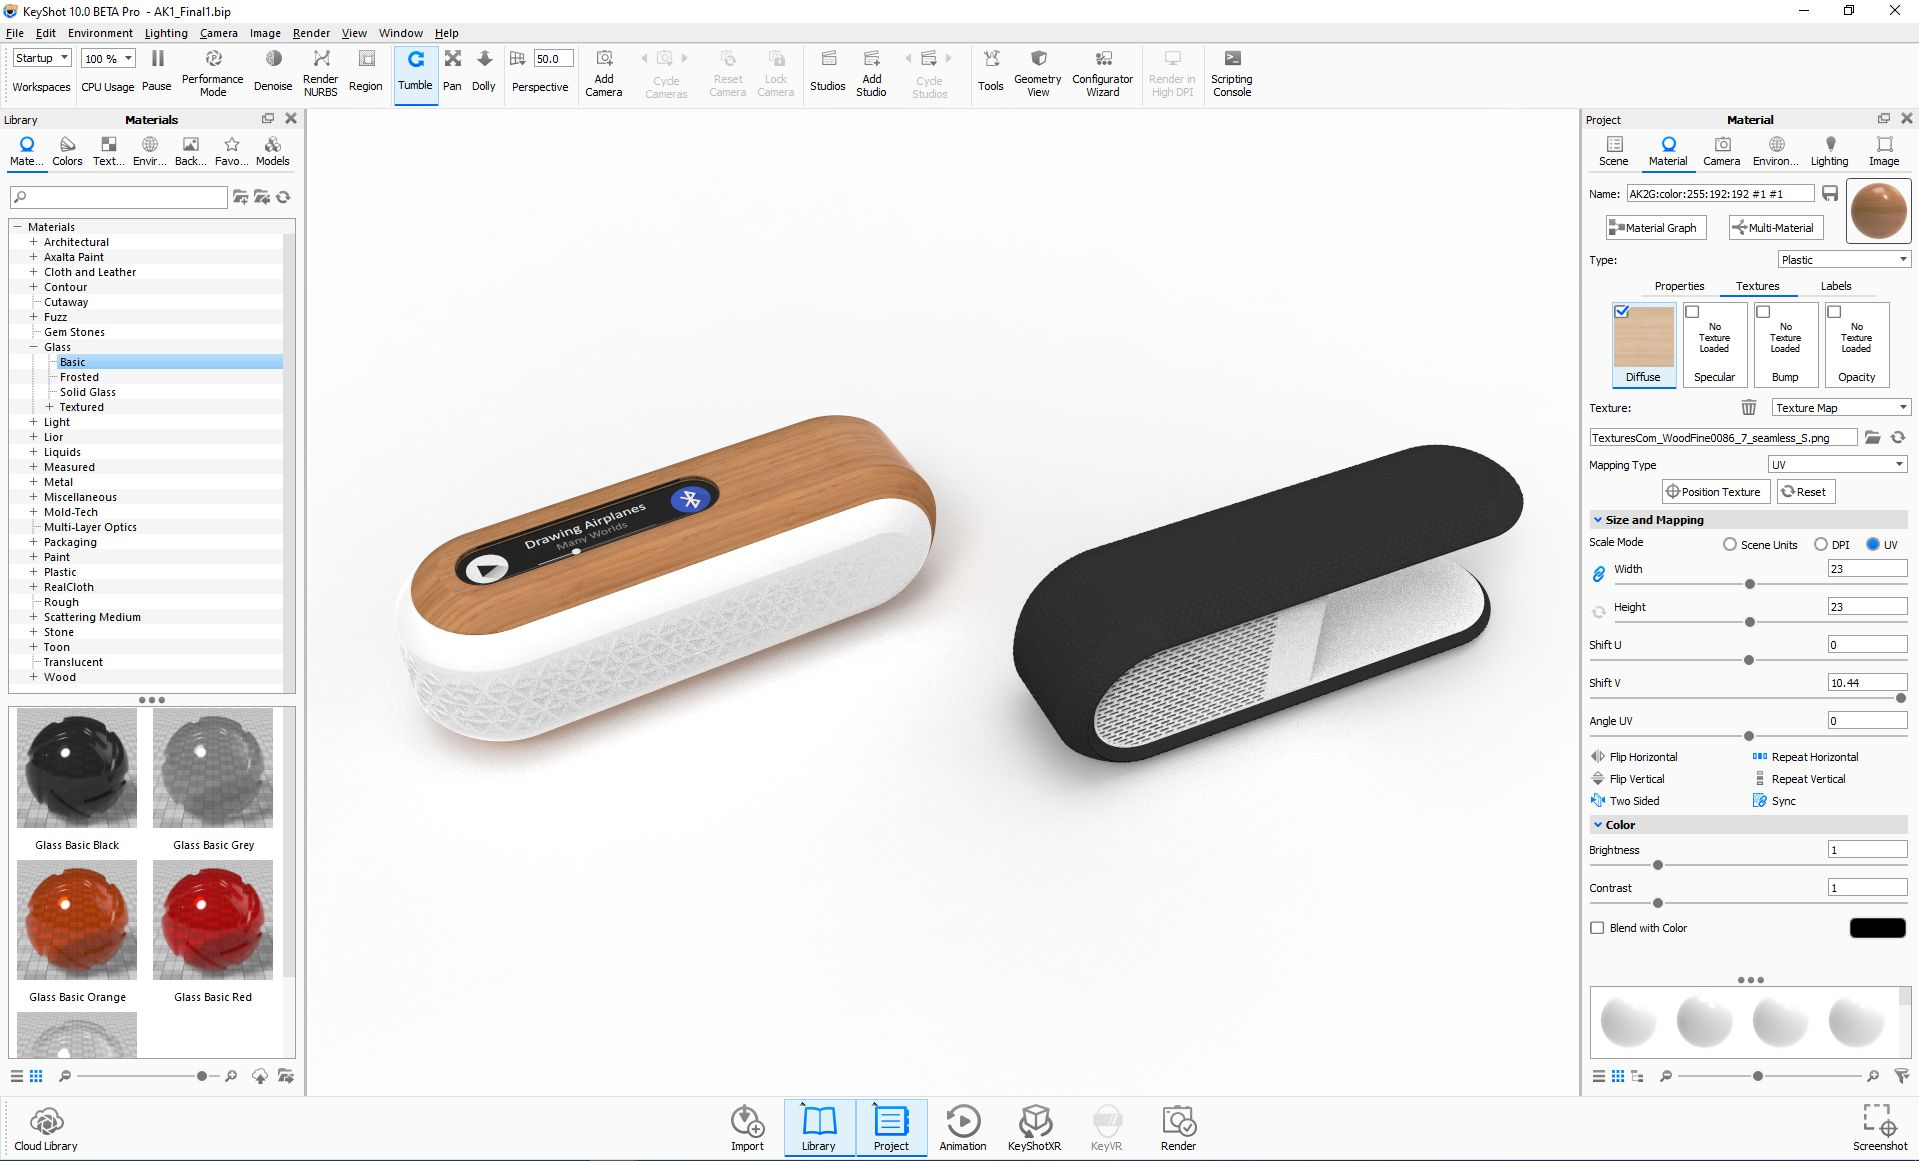 Image of speaker prototype in Keyshot software.